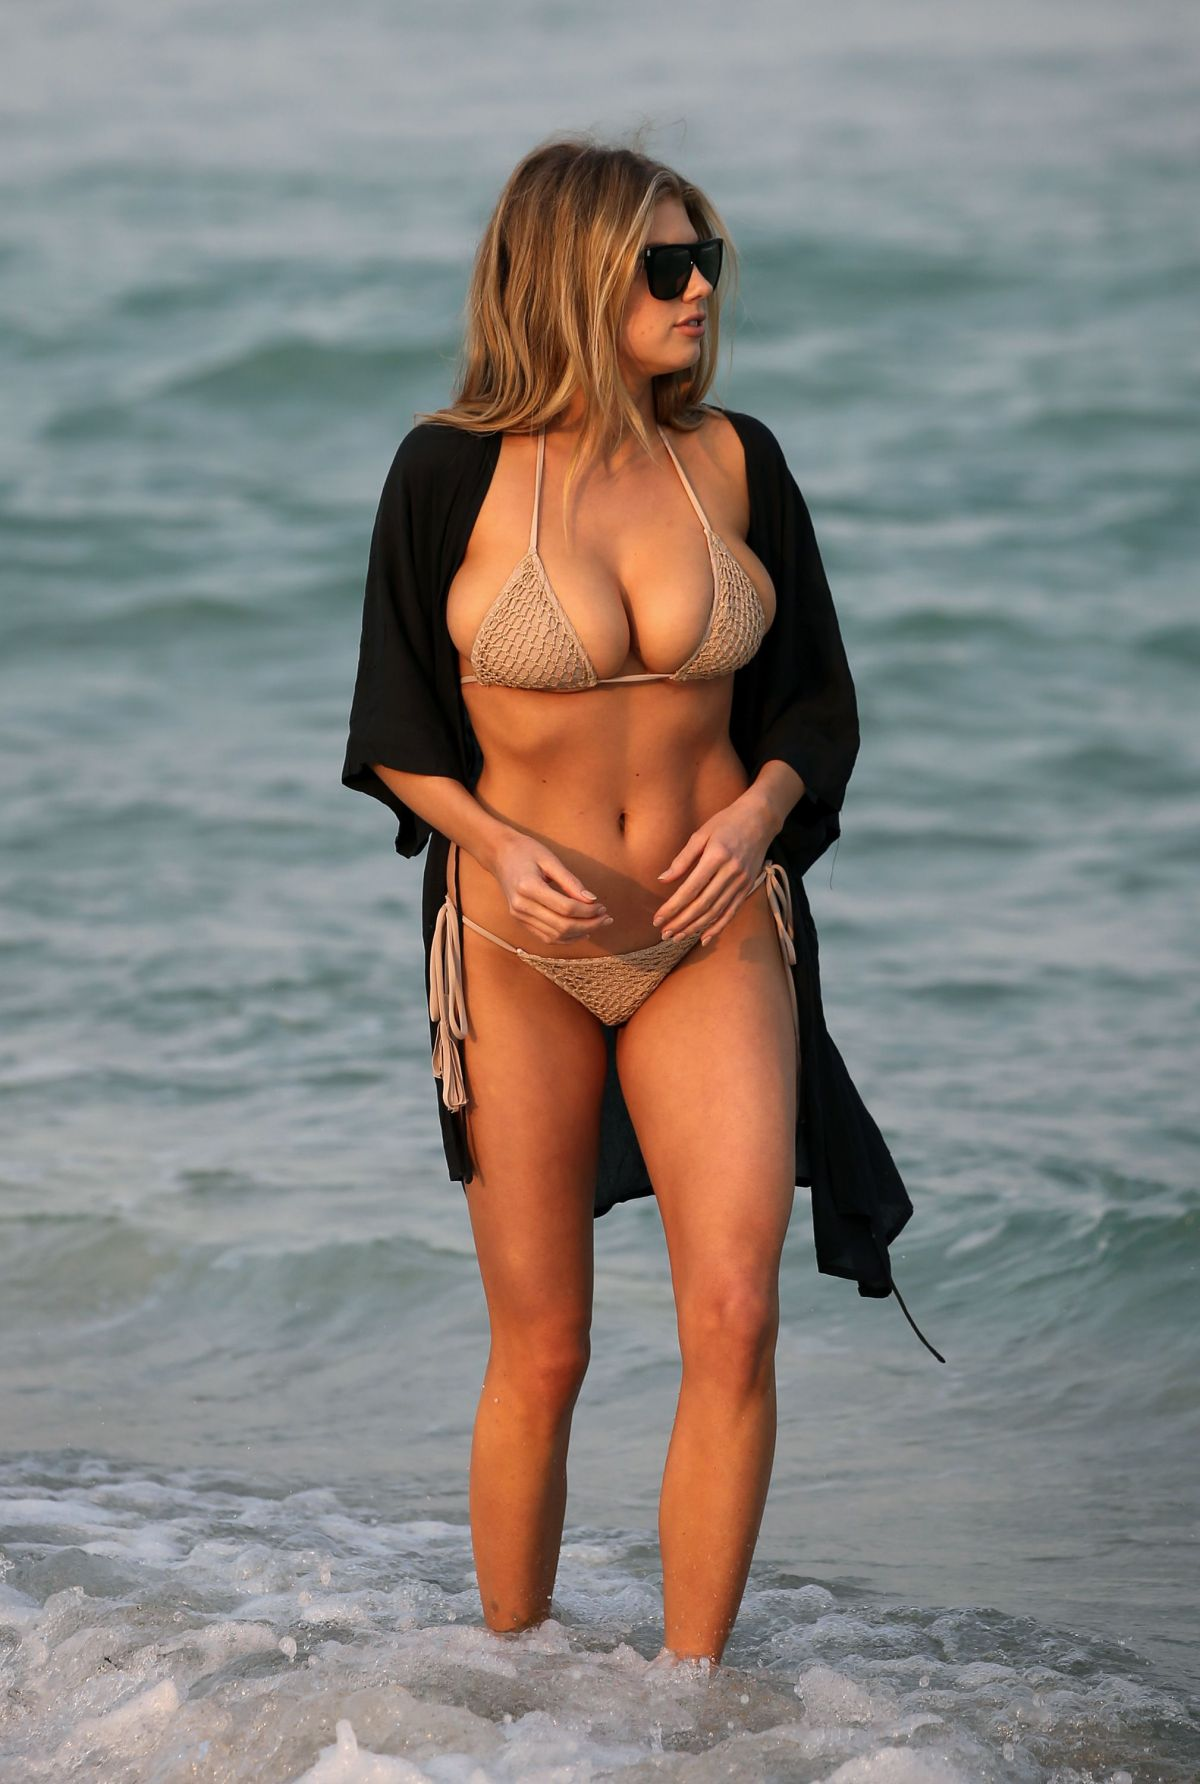 charlotte-mckinney-in-bikini-at-a-beach-in-miami-02-16-2017_26.jpg